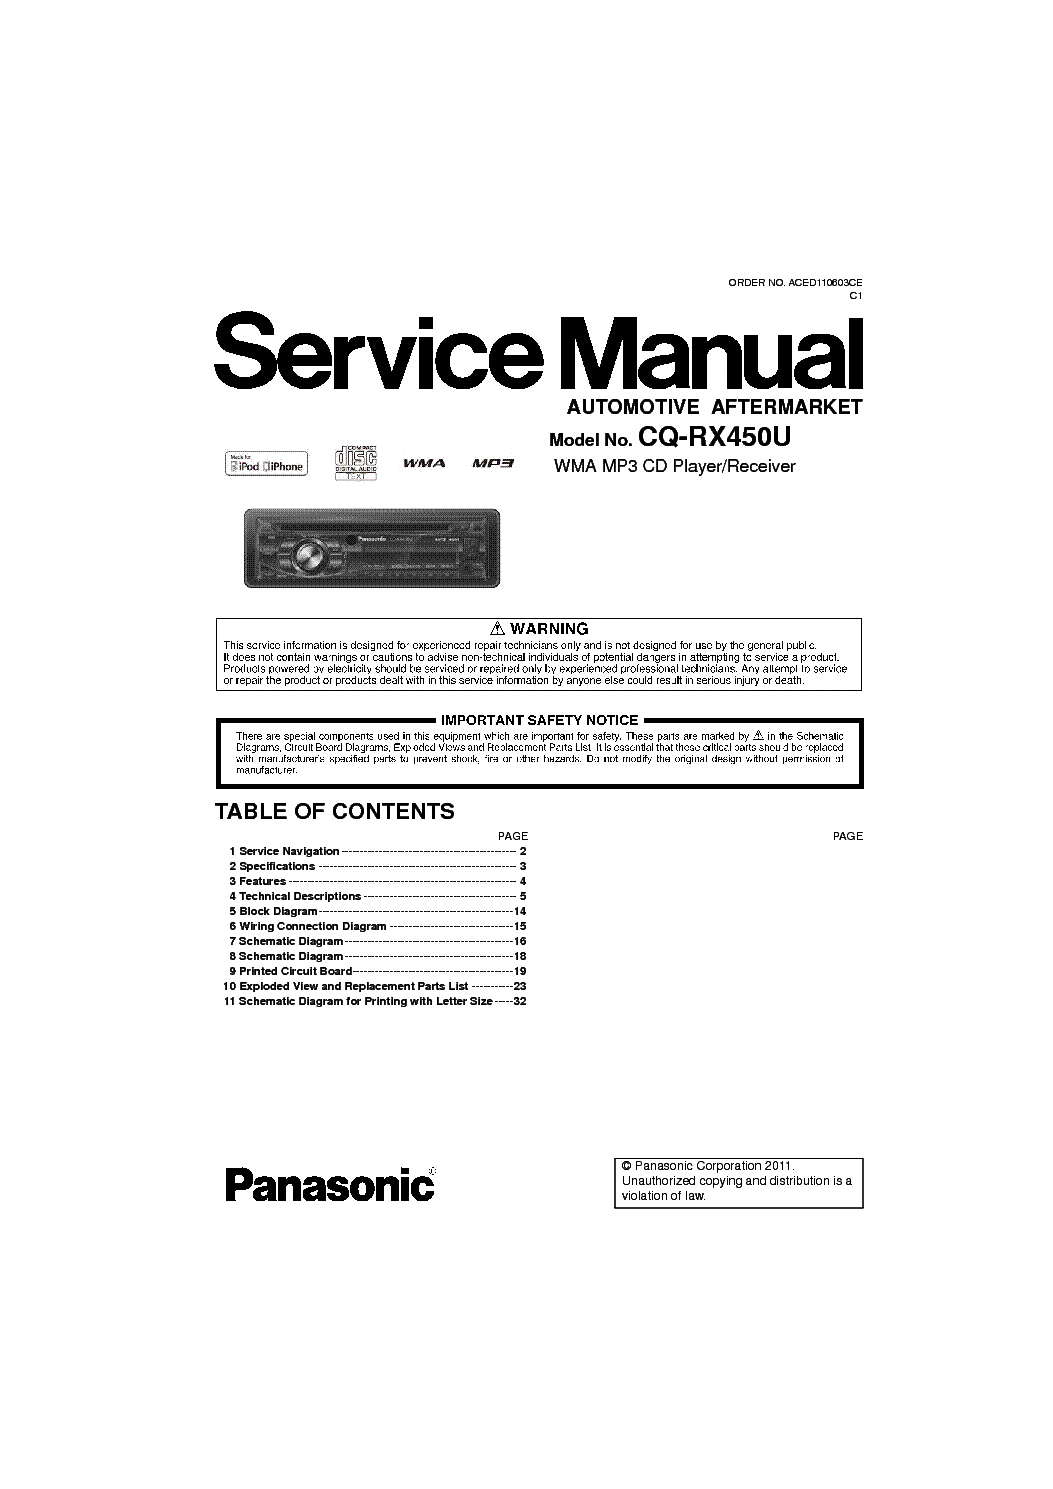 panasonic_cq rx450u.pdf_1 panasonic cq rx450u service manual download, schematics, eeprom panasonic wiring diagram at bakdesigns.co